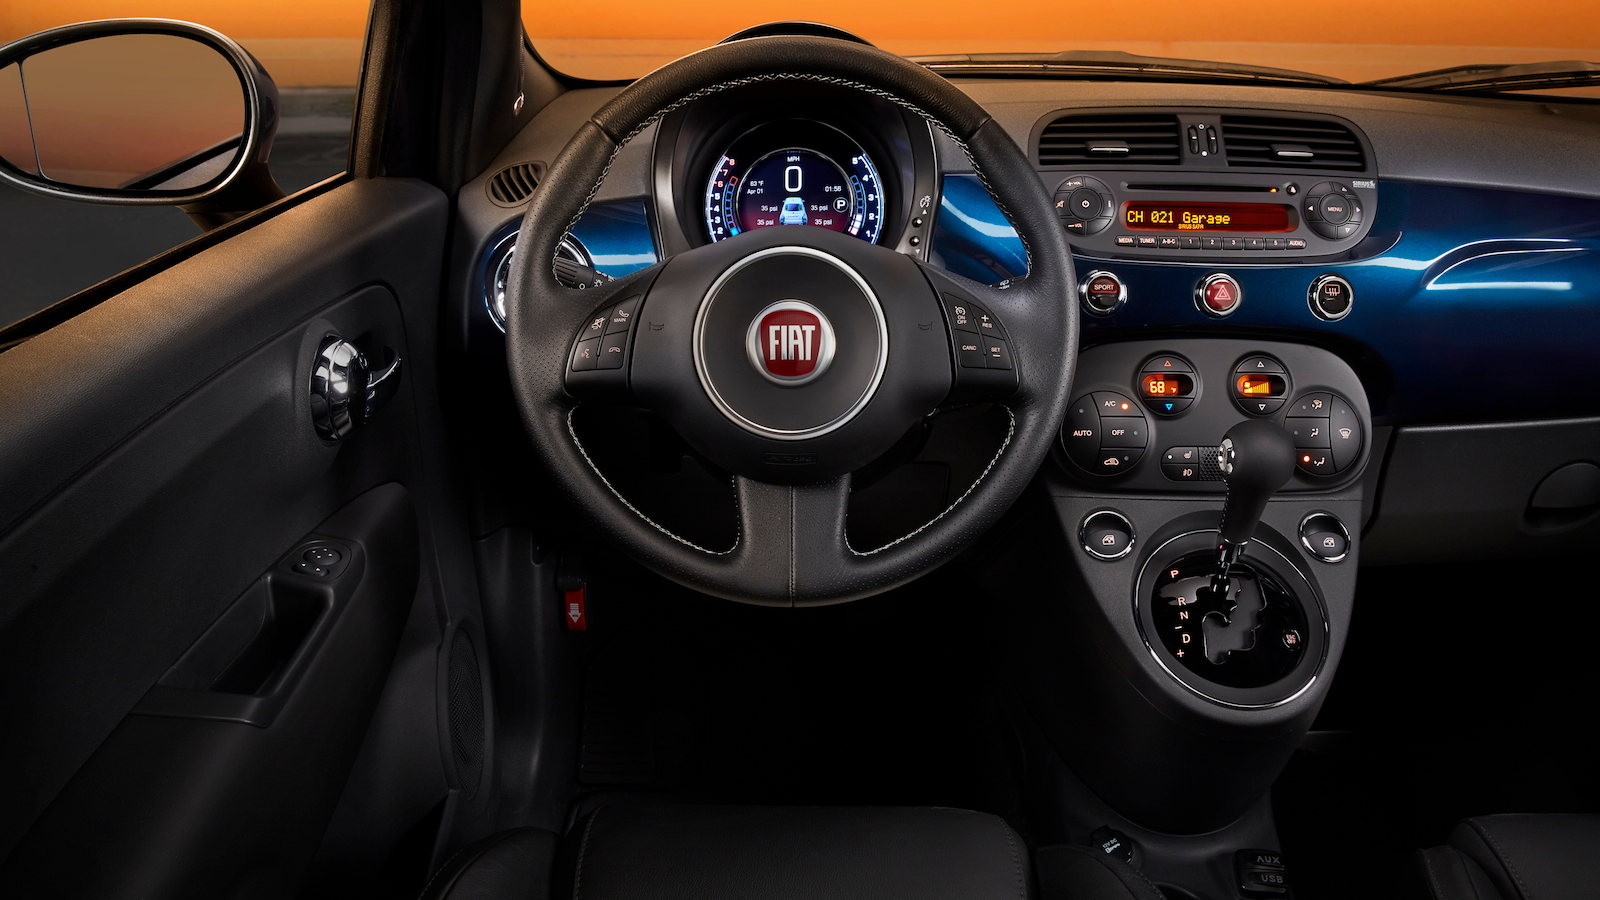 2015 Fiat 500 Updated With New Instrument Cluster, Display ...